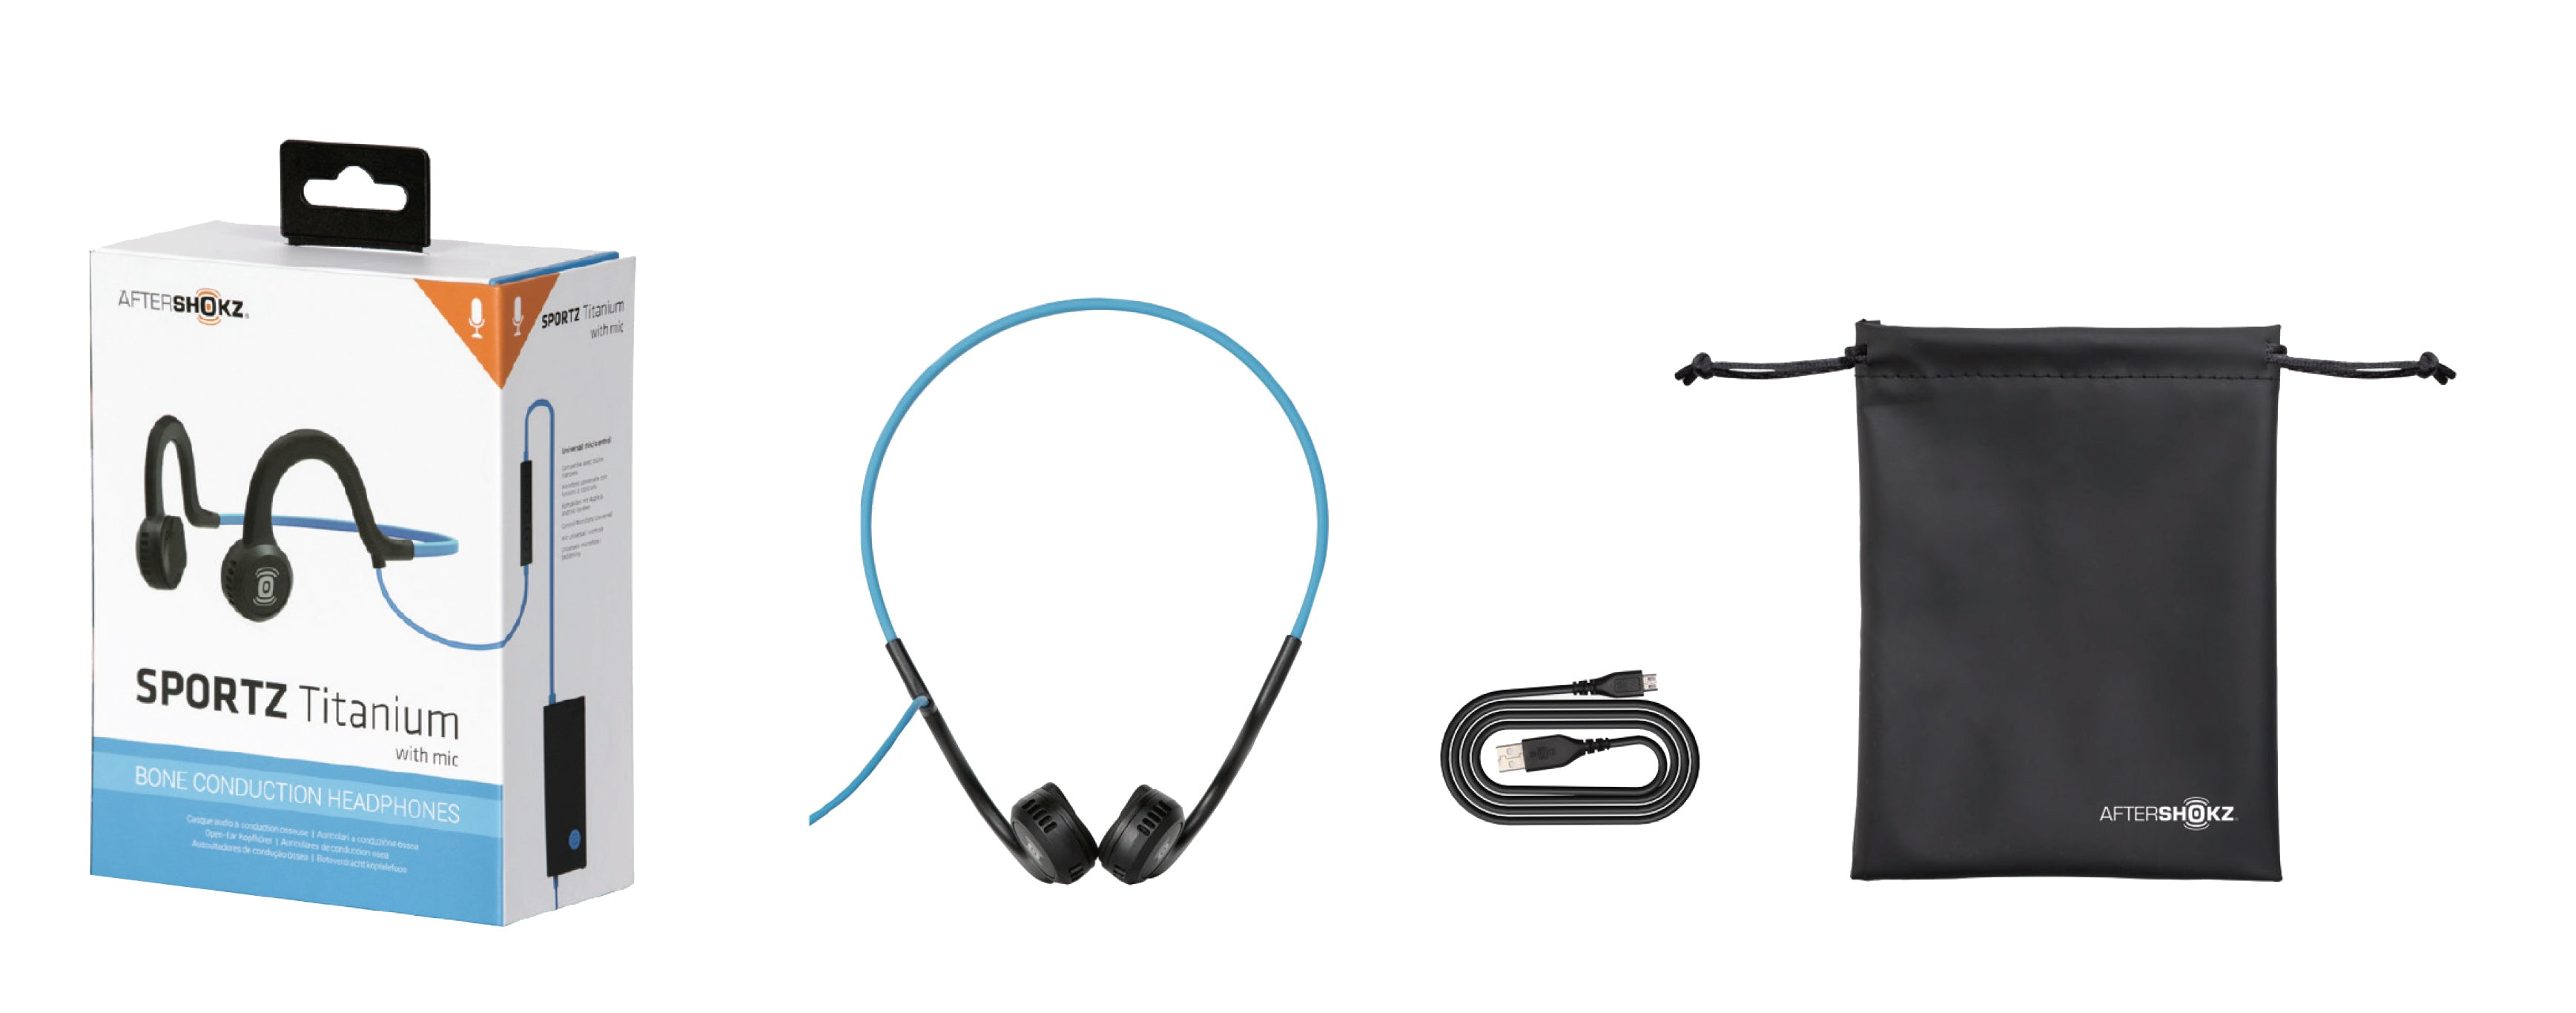 Sportz Titanium with mic, Micro-usb charging cable, and portable pouch